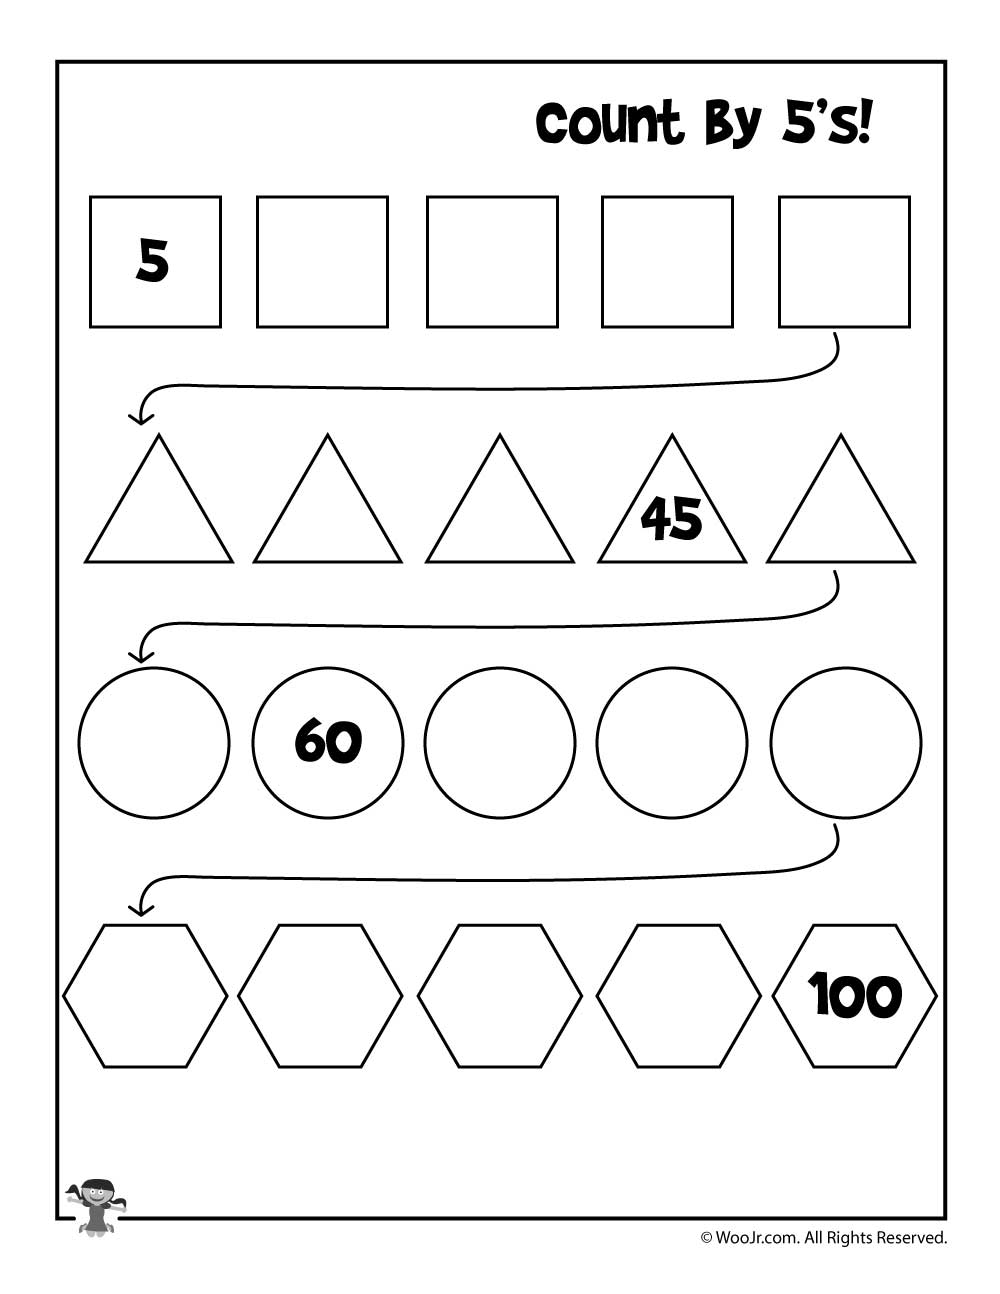 3RD GRADE MATH   SKIP COUNTING BY 5s WORKSHEETS   Steemit also skip counting by 5 worksheets further Free Skip Counting Worksheets likewise skip counting by 100 worksheets further Skip Counting   FREE Printable Worksheets – Worksheetfun also skip counting worksheets pdf as well Rainbow Skip Counting by 5s and 10s   A to Z Teacher Stuff Printable additionally Count by 5's Worksheet   Woo  Jr  Kids Activities additionally Skip Counting by 2  5 and 10 – Worksheet   FREE Printable Worksheets likewise counting by 5s worksheets additionally skip counting to 1000 worksheets further skip counting worksheets 3rd grade also  additionally  additionally Skip Counting Worksheets Free By 2 Vertical Count 3 5 And Worksheet as well skip counting by 2 worksheets – primalvape co. on skip counting by 5 worksheets